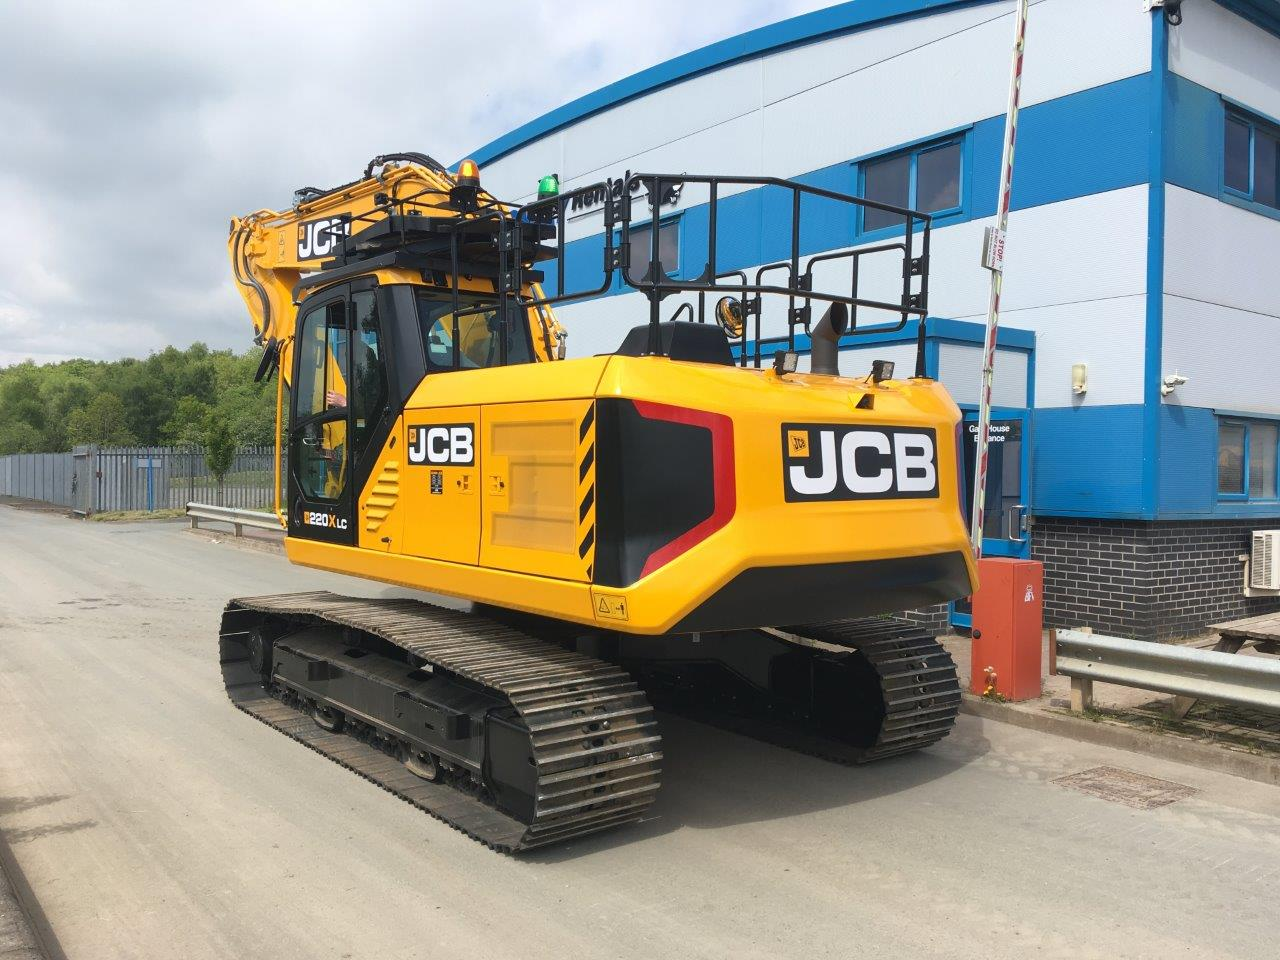 Brand New JCB JS220x Excavator Hire At Ridgway Rentals Ltd